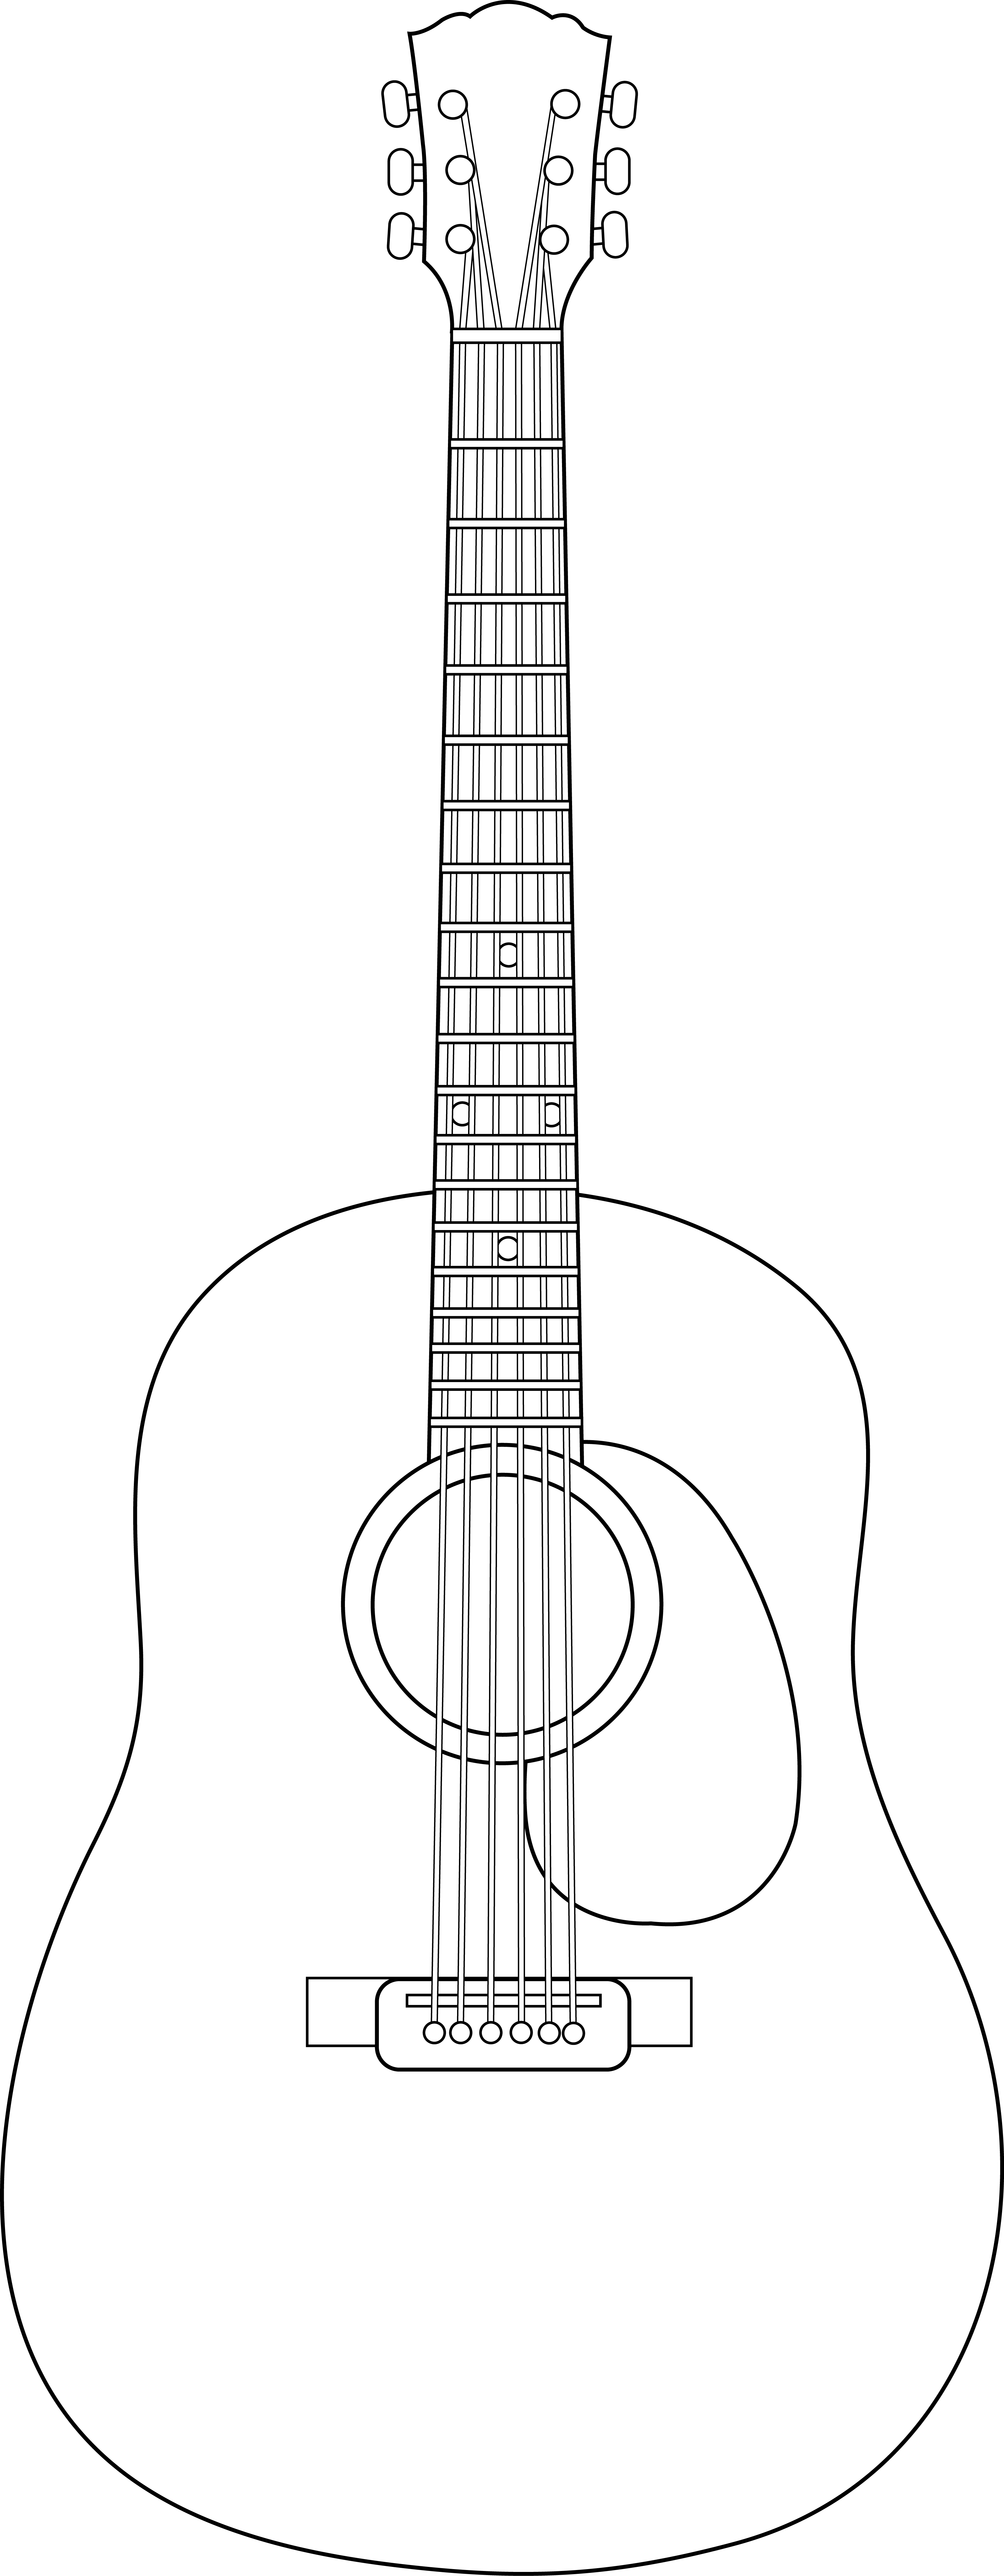 guitar coloring picture colorable guitar line art free clip art guitar coloring picture